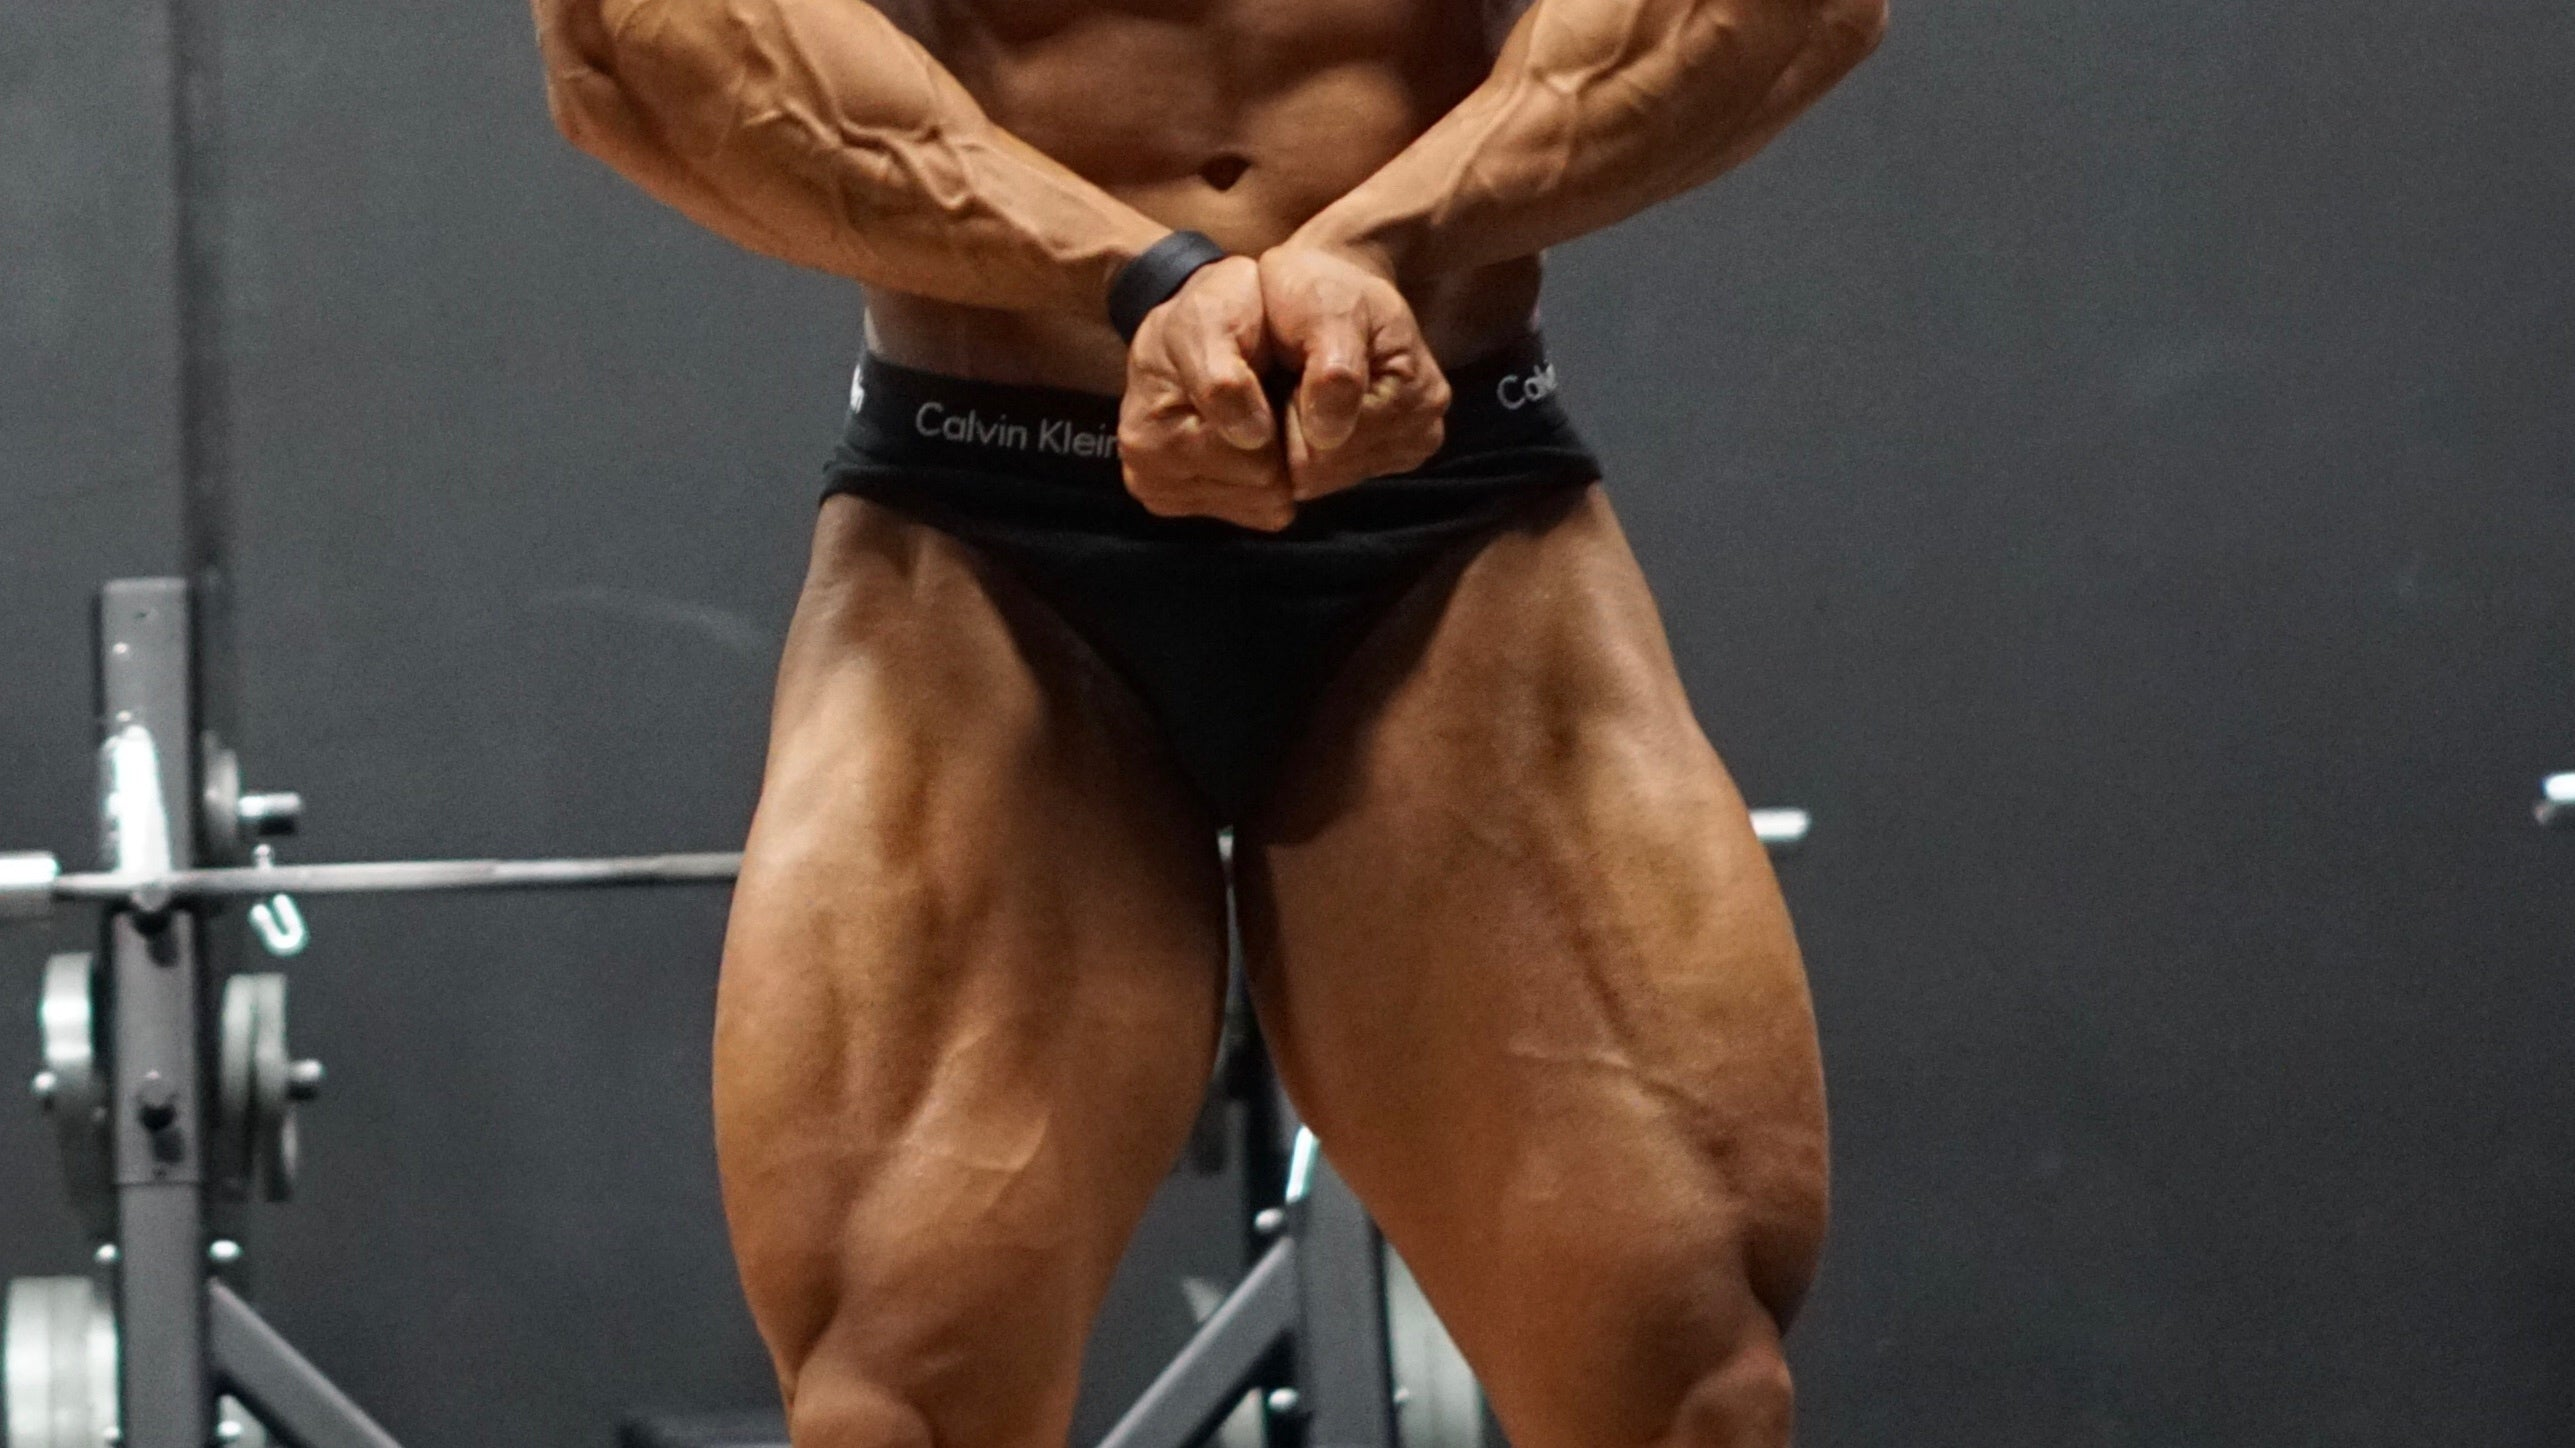 BFL2 Leg Workout (6 WEEK PROGRAM DESIGNED TO PRODUCE LEG GAINS)